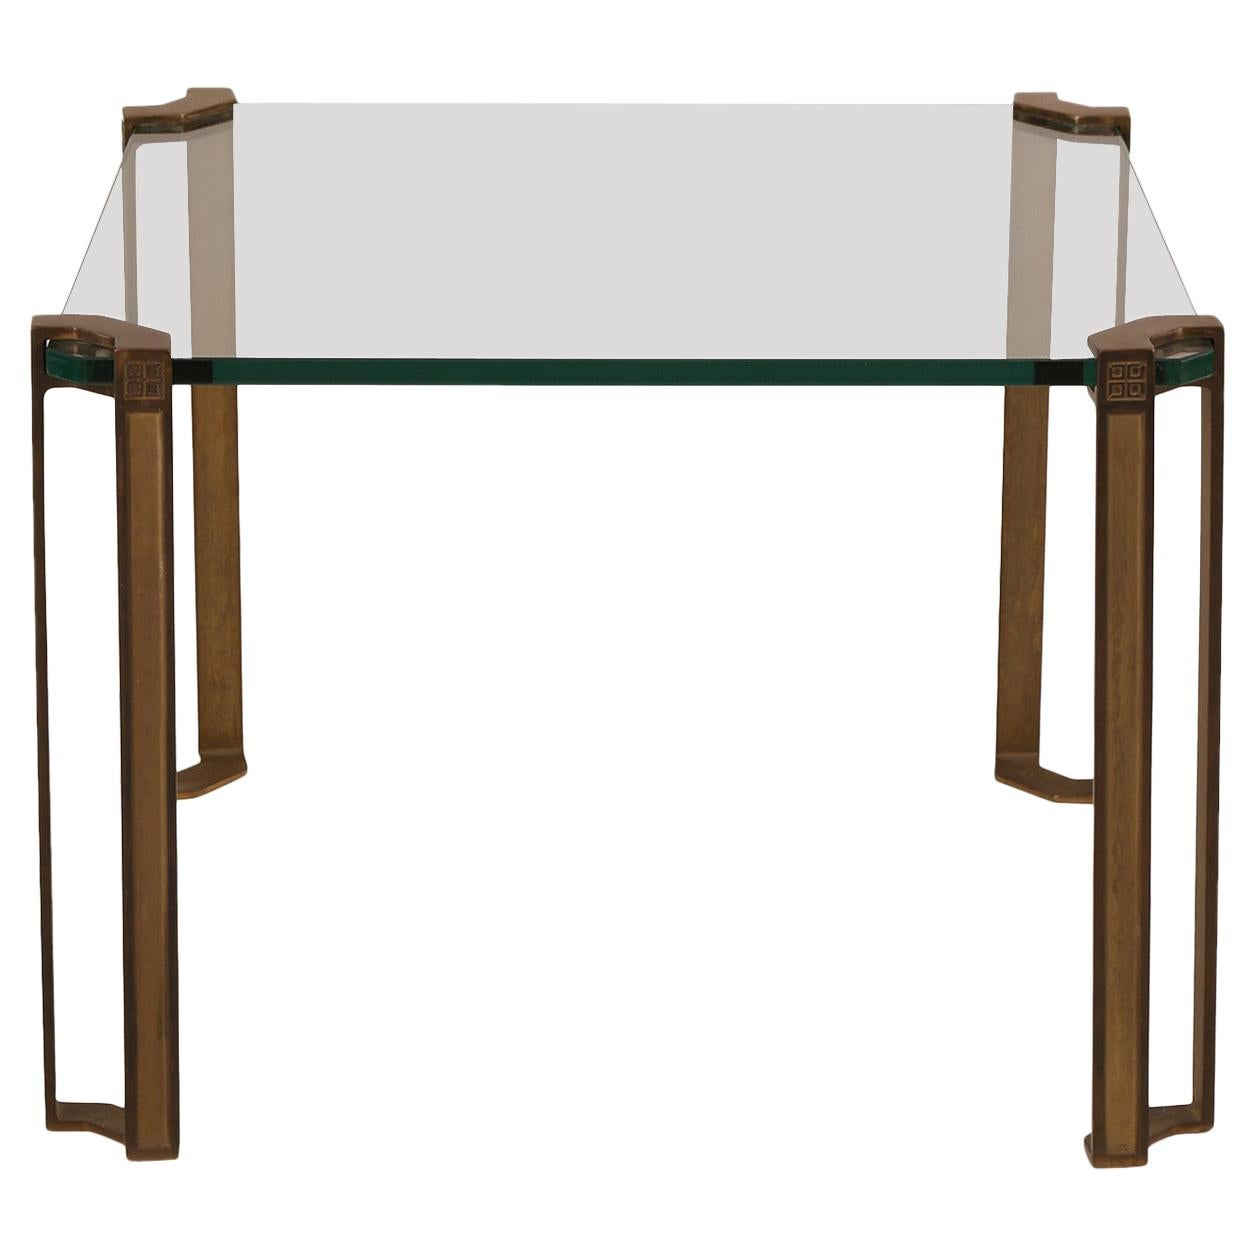 Peter Ghyczy Bronze and Glass Table